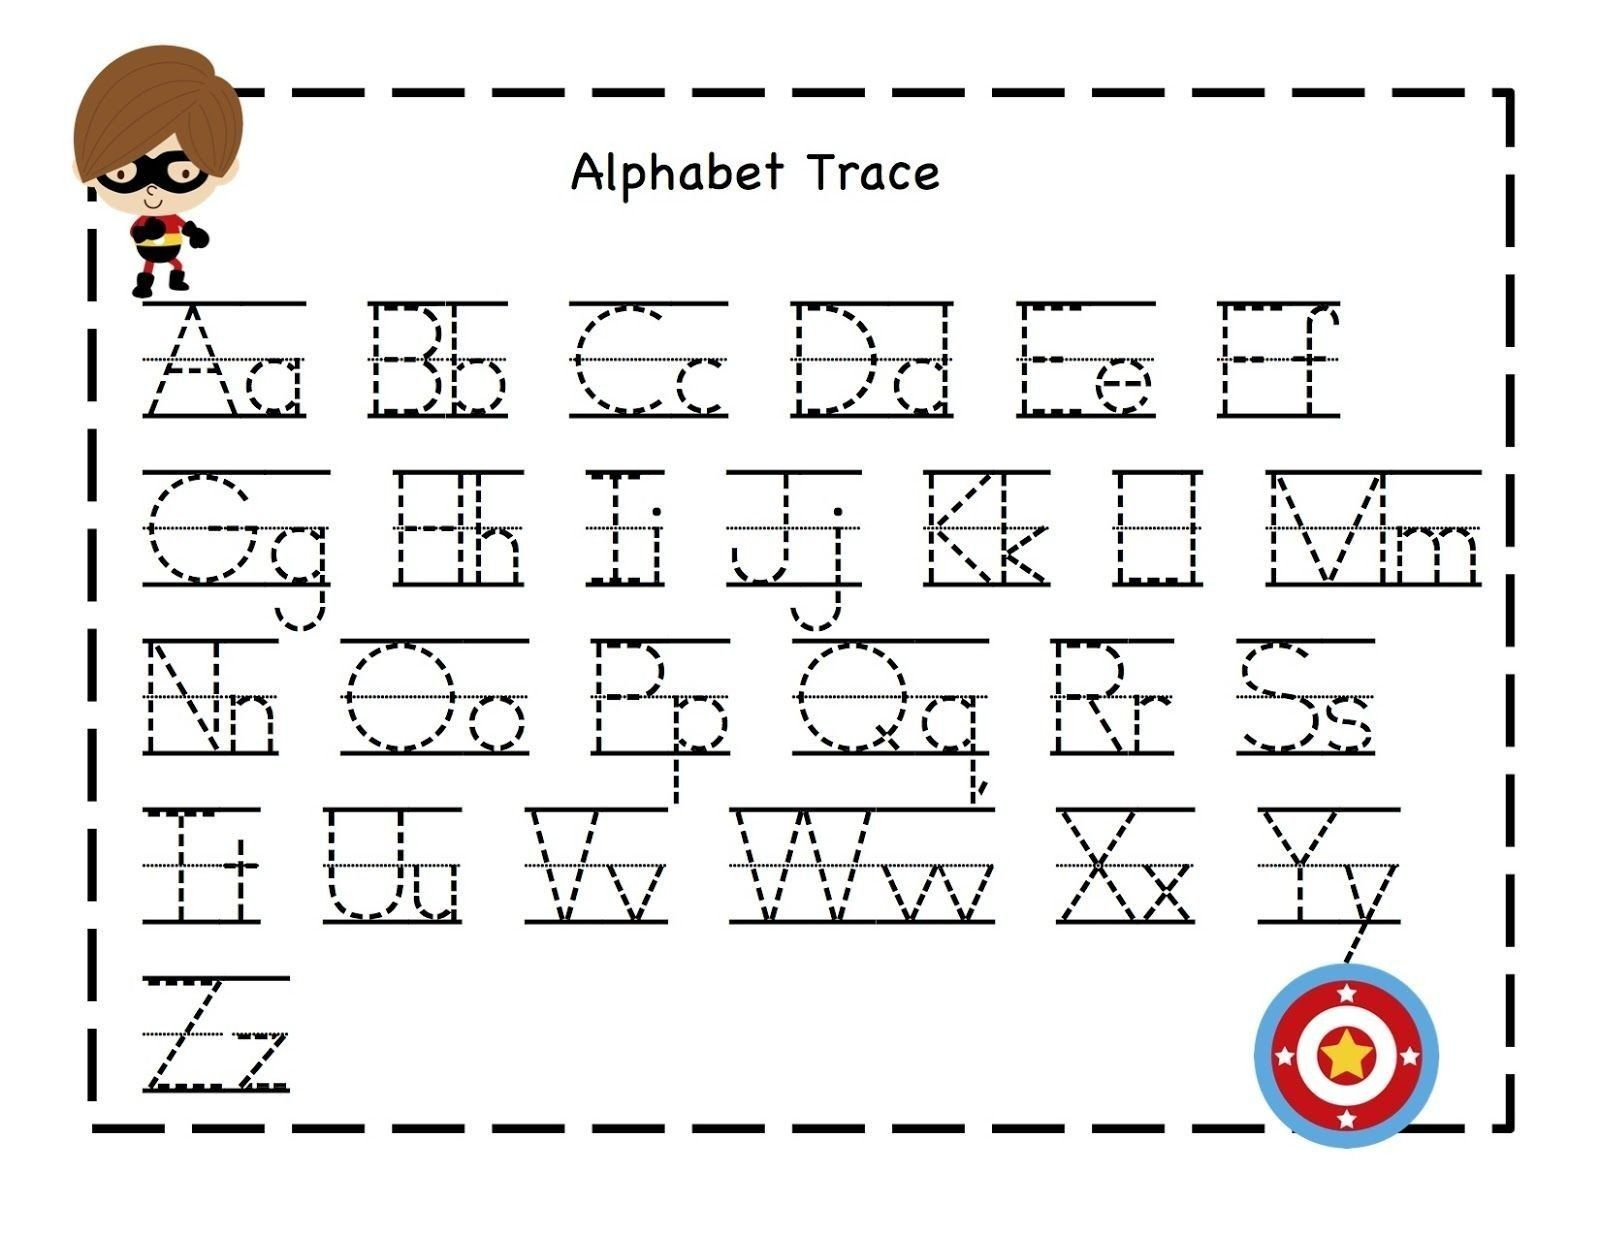 Alphabet Tracing Worksheets For 3 Year Olds - Best Of inside Tracing Letters For 3 Year Olds